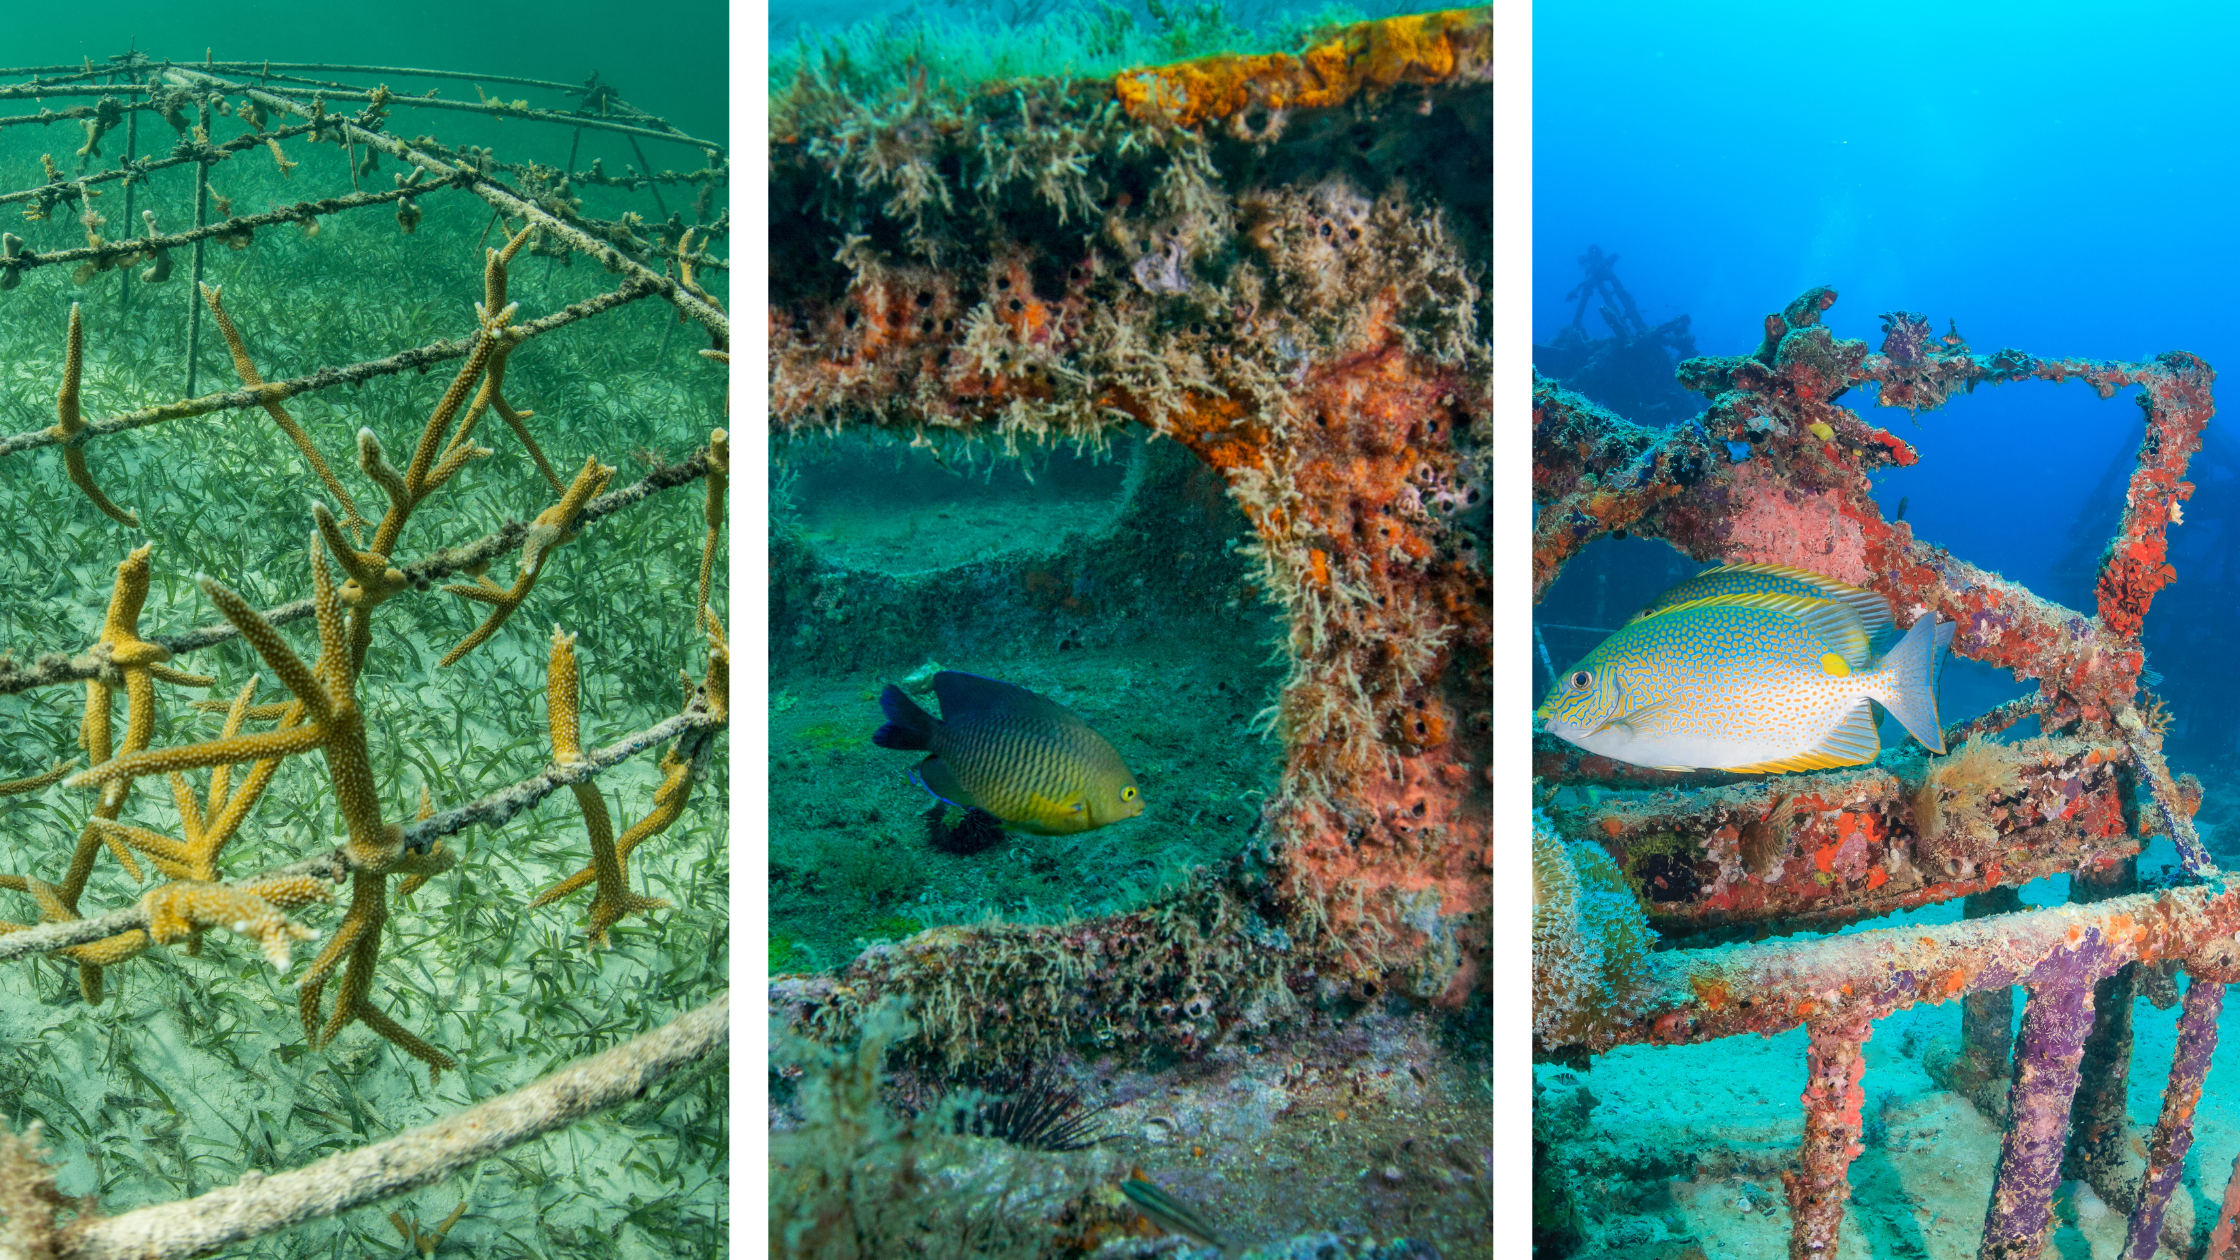 Three different types of reefs are shown side by side in a collage to demonstrate the wide variety of requests a contractor might get for building artificial reefs.